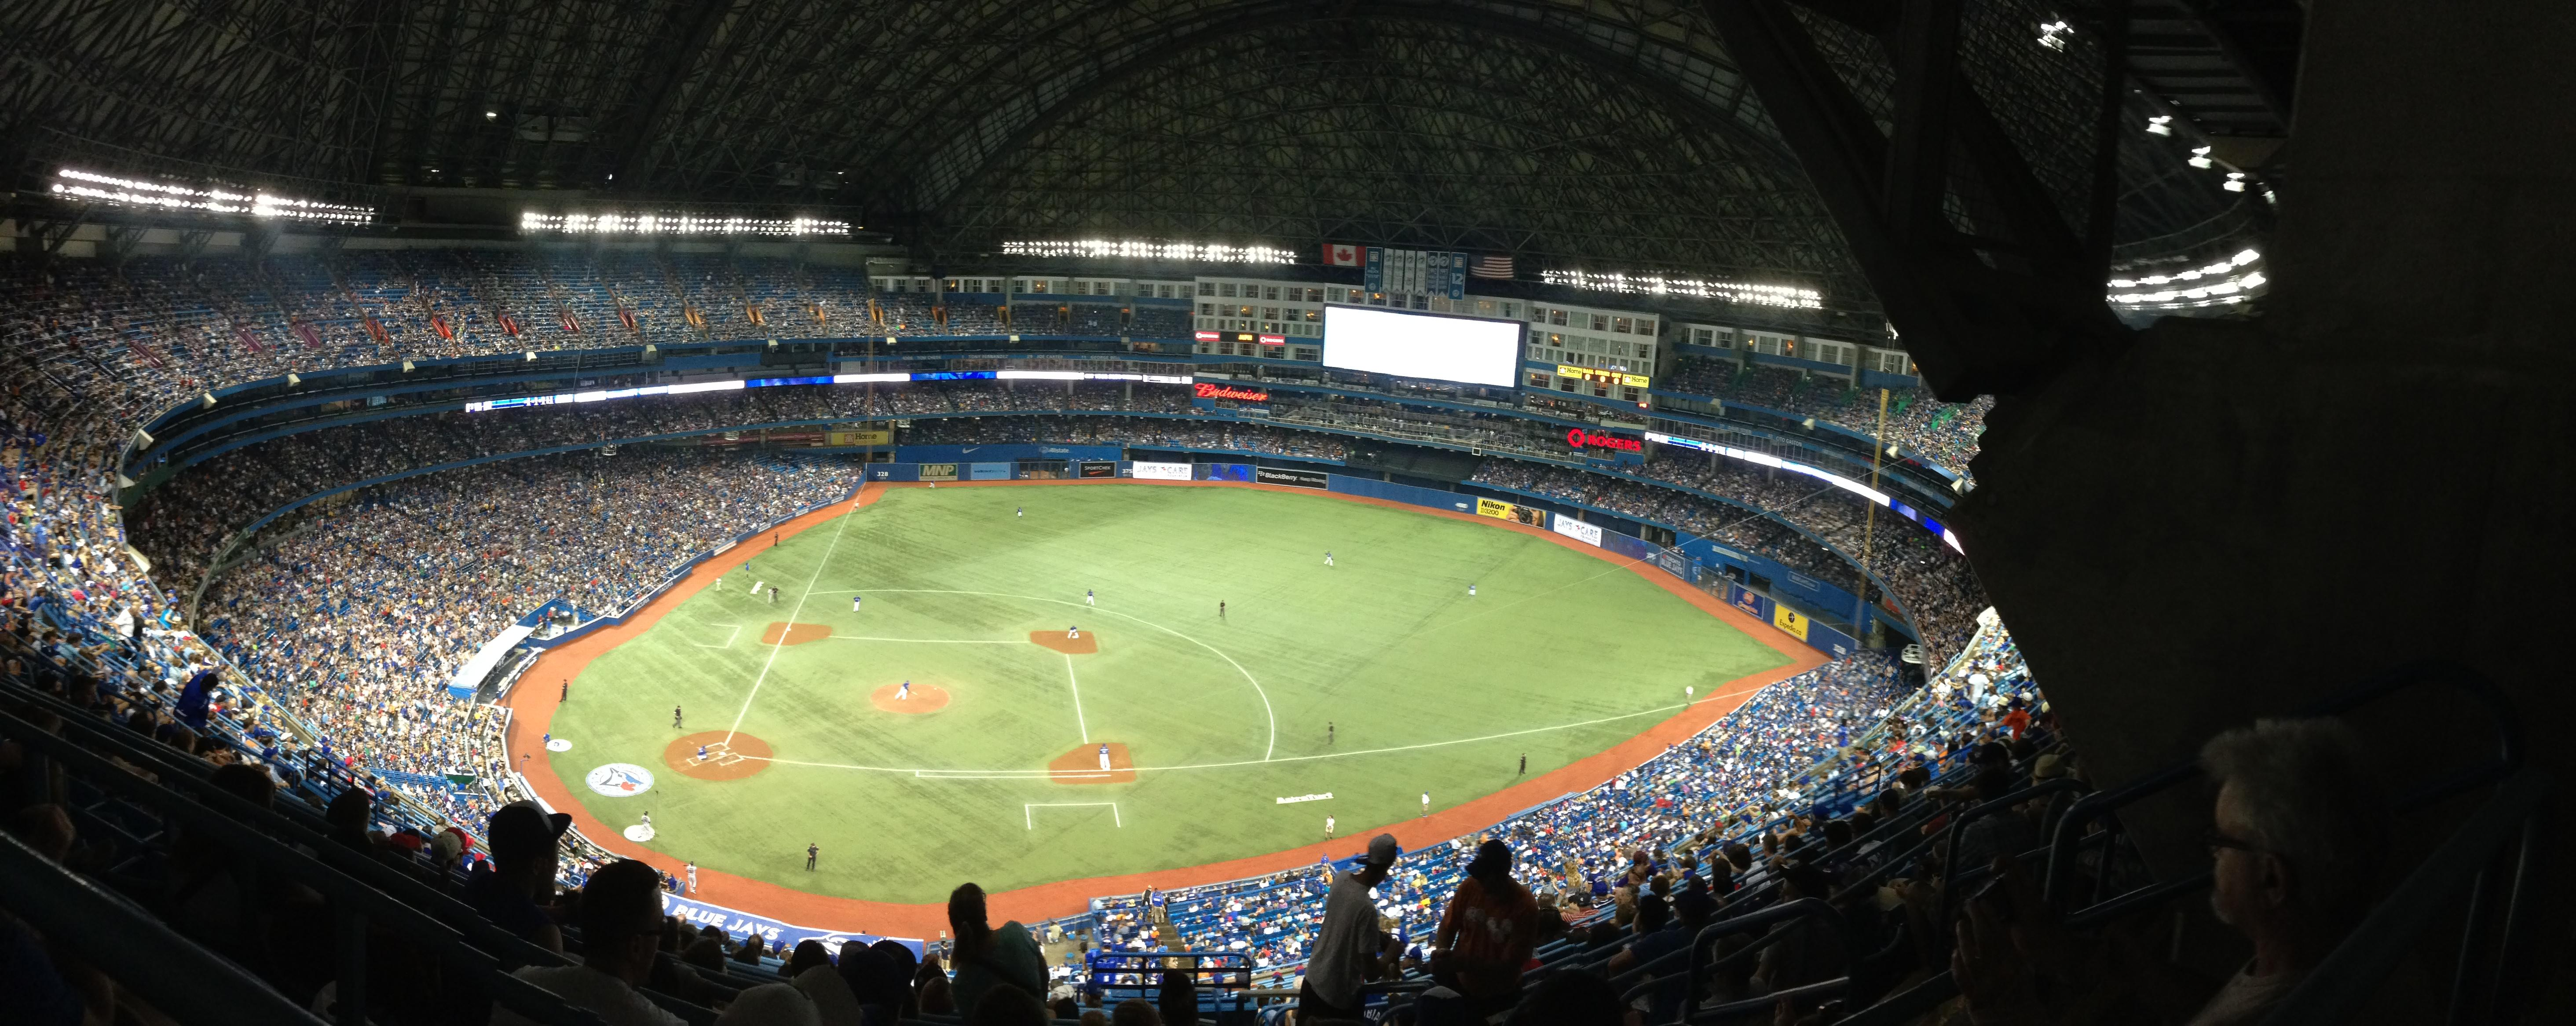 Rogers Centre Section 519L Row 21 Seat 106